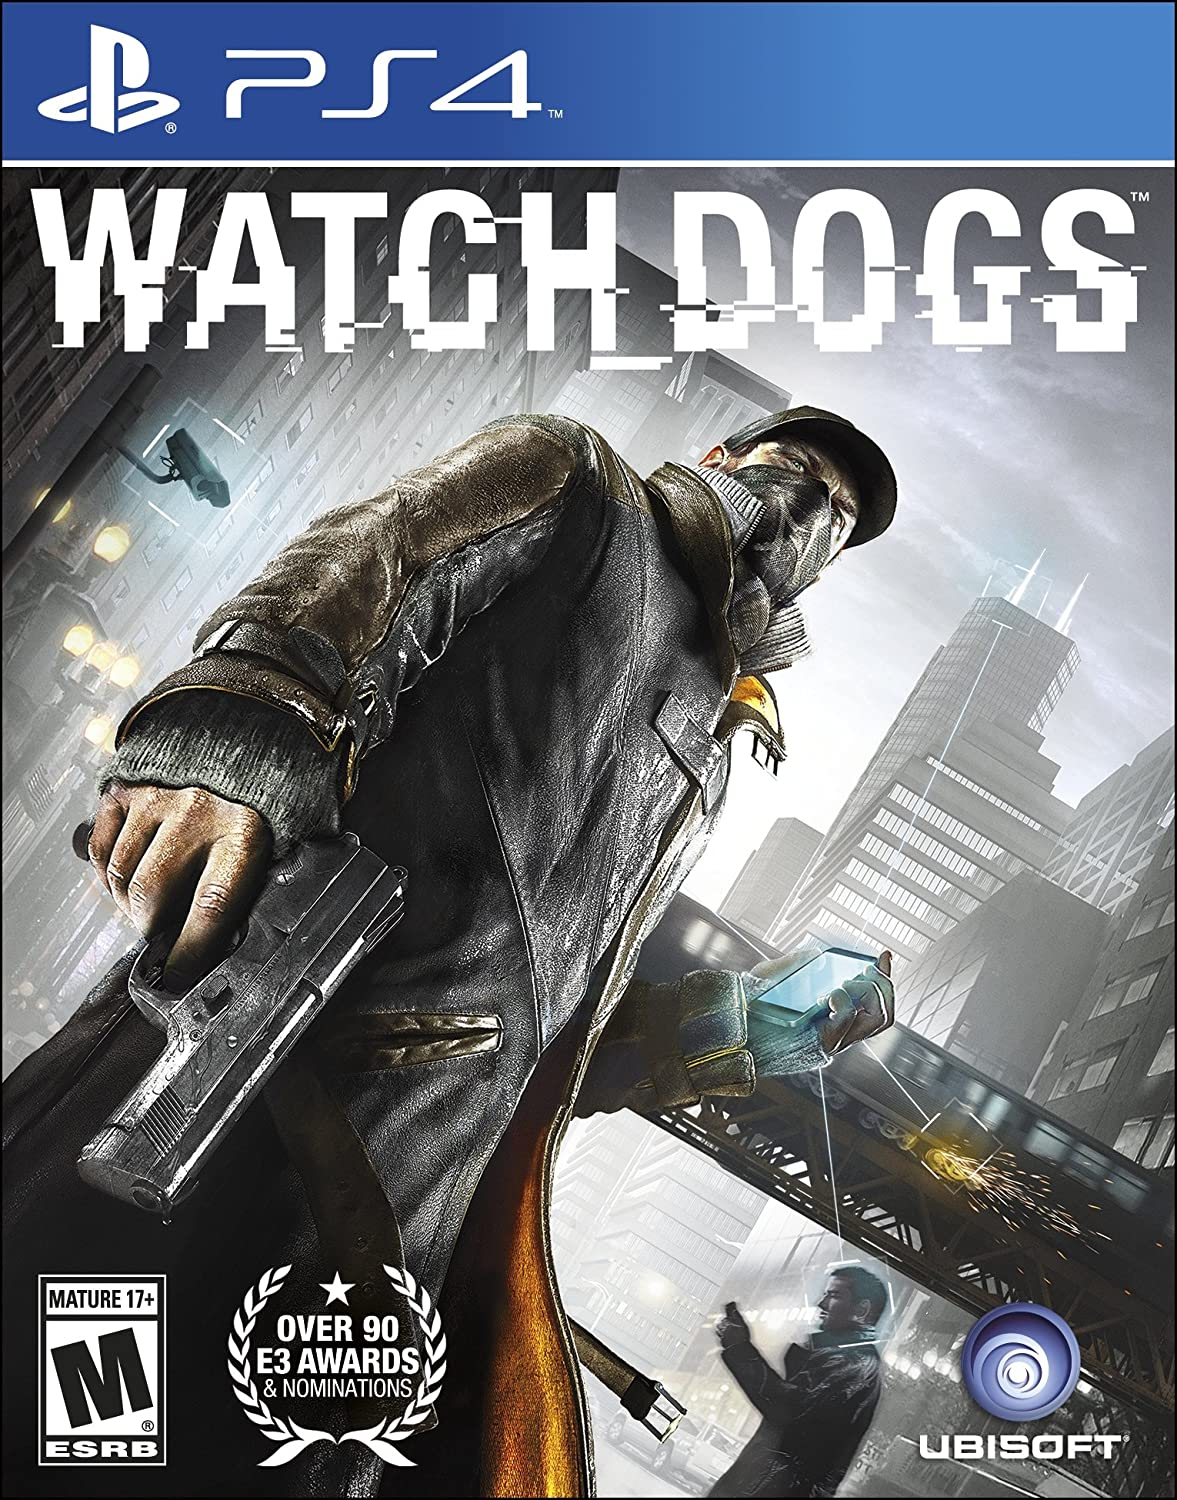 watch dogs 2 serial key download